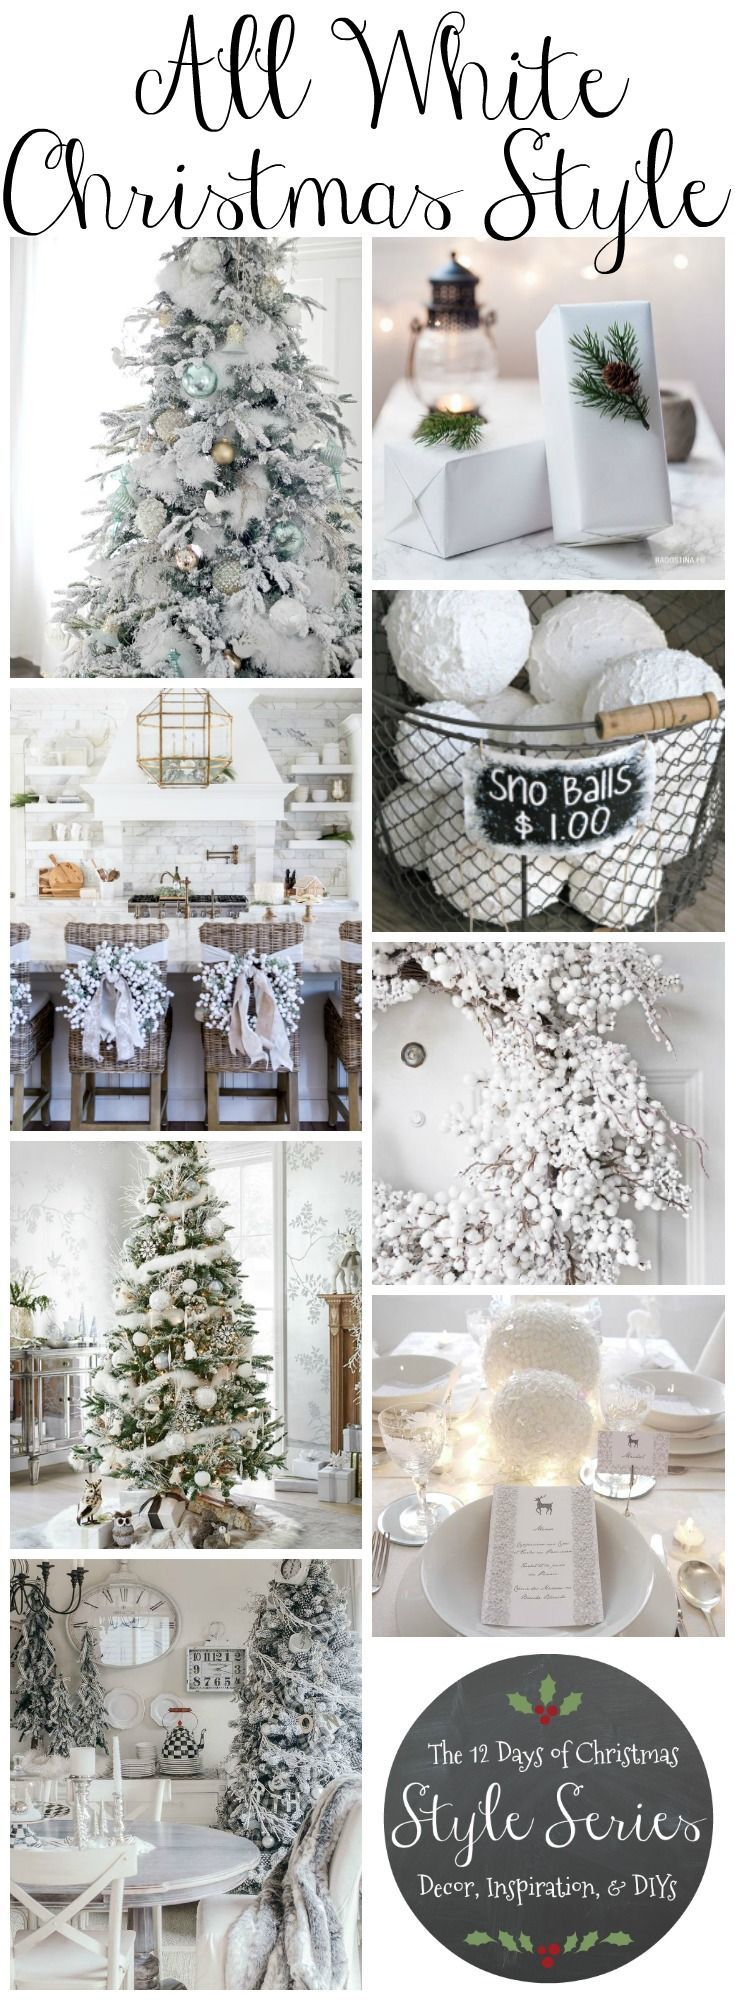 All White Christmas Style Series | The Happy Housie